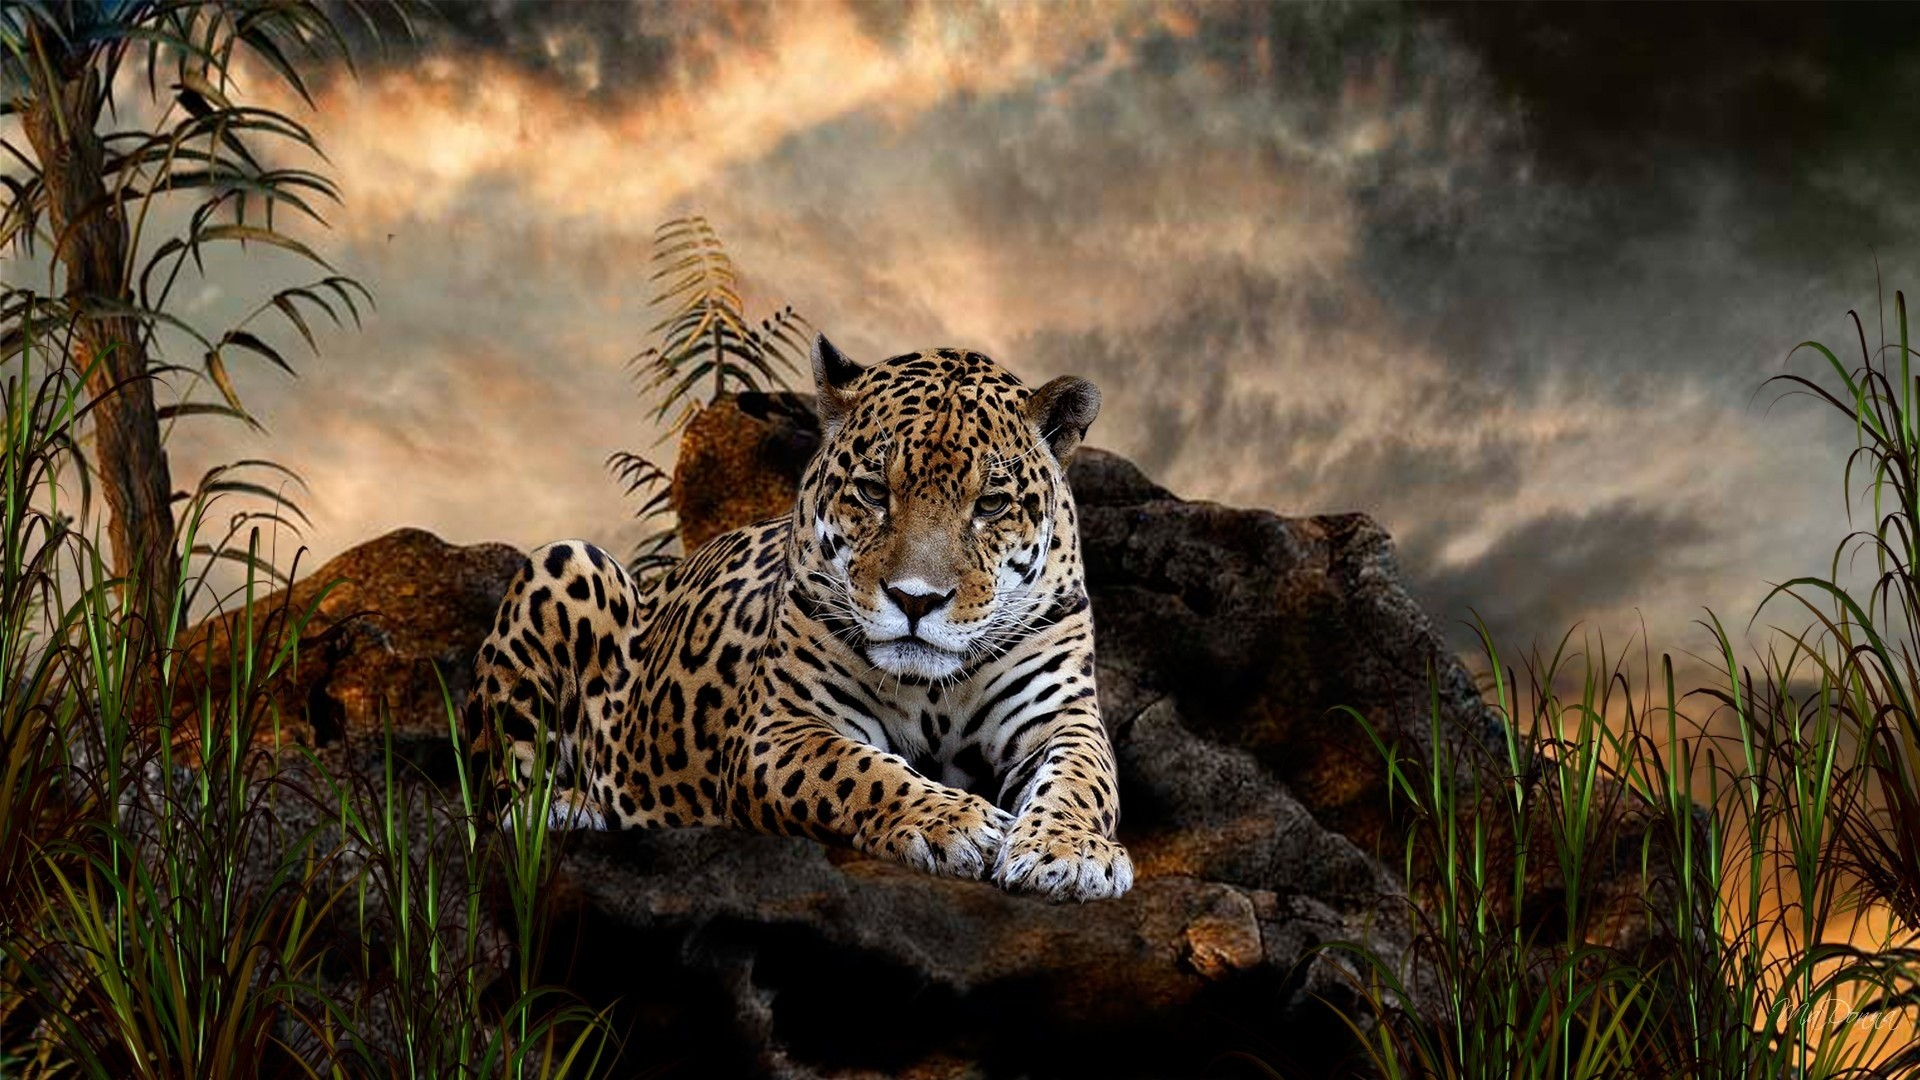 wildlife wallpapers and screensavers (69+ images)